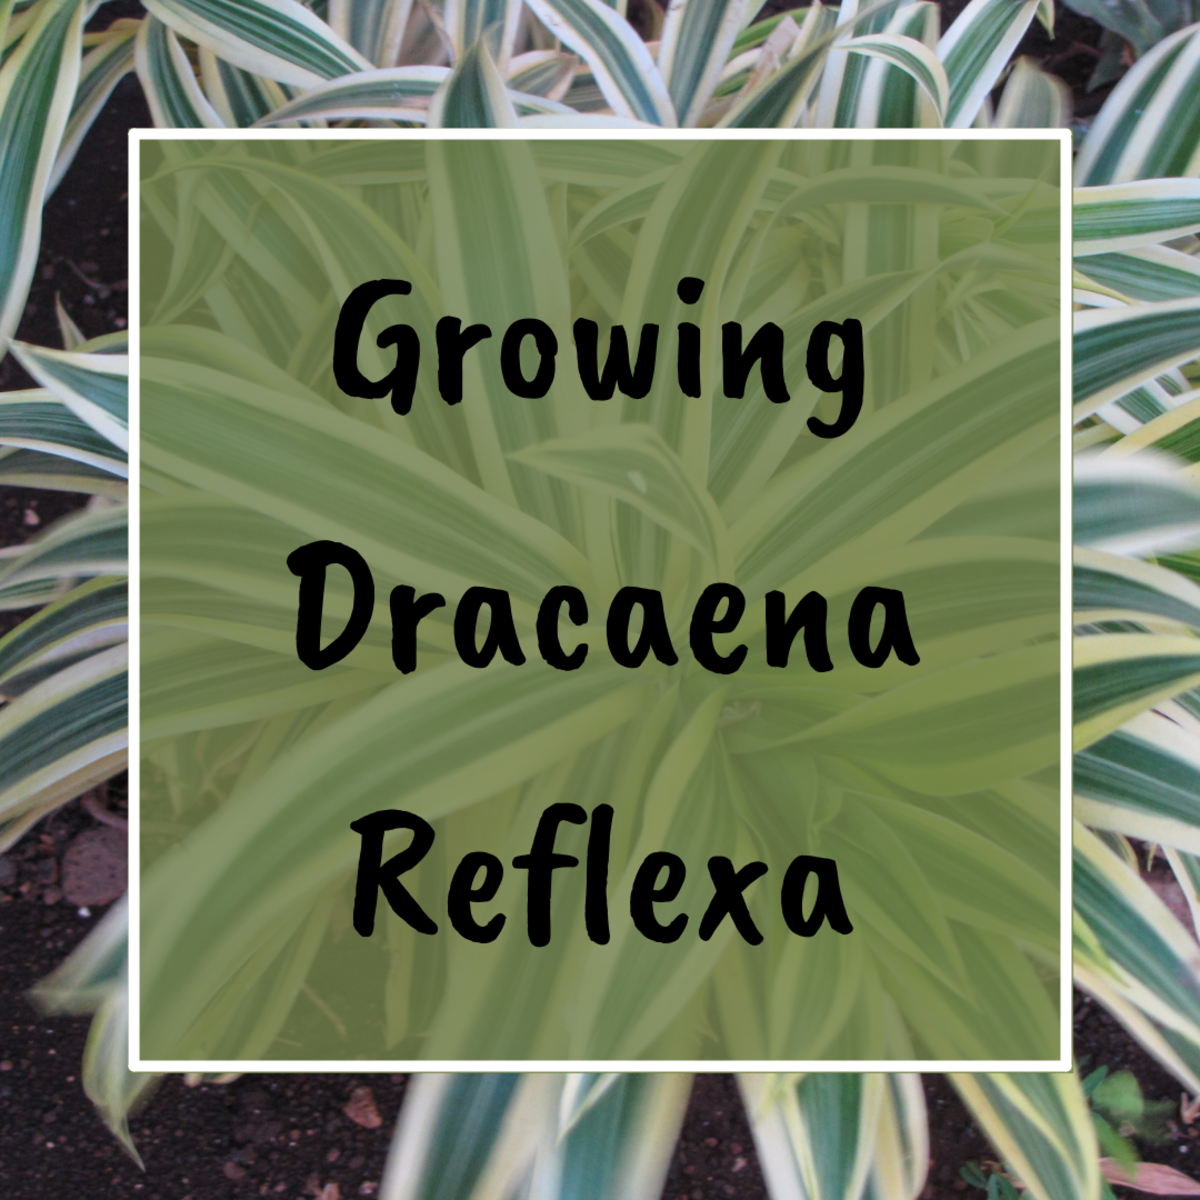 This article will teach you how to grow, care for, and maintain the Dracaena Reflexa plant, also known as the Song of Jamaica